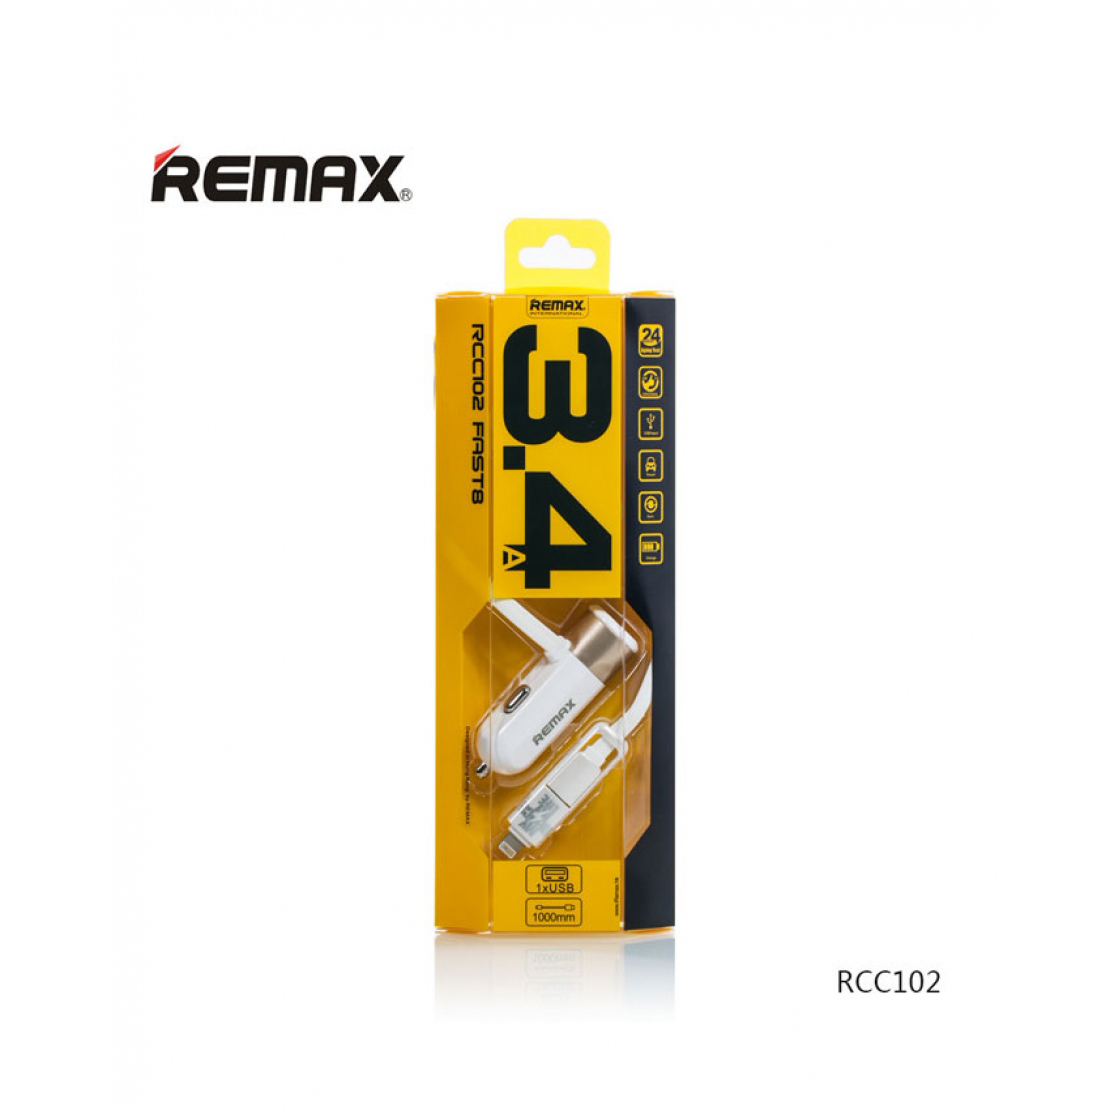 Remax Fast 8 3.4A Single USB Car Charger With 2in1 Cable